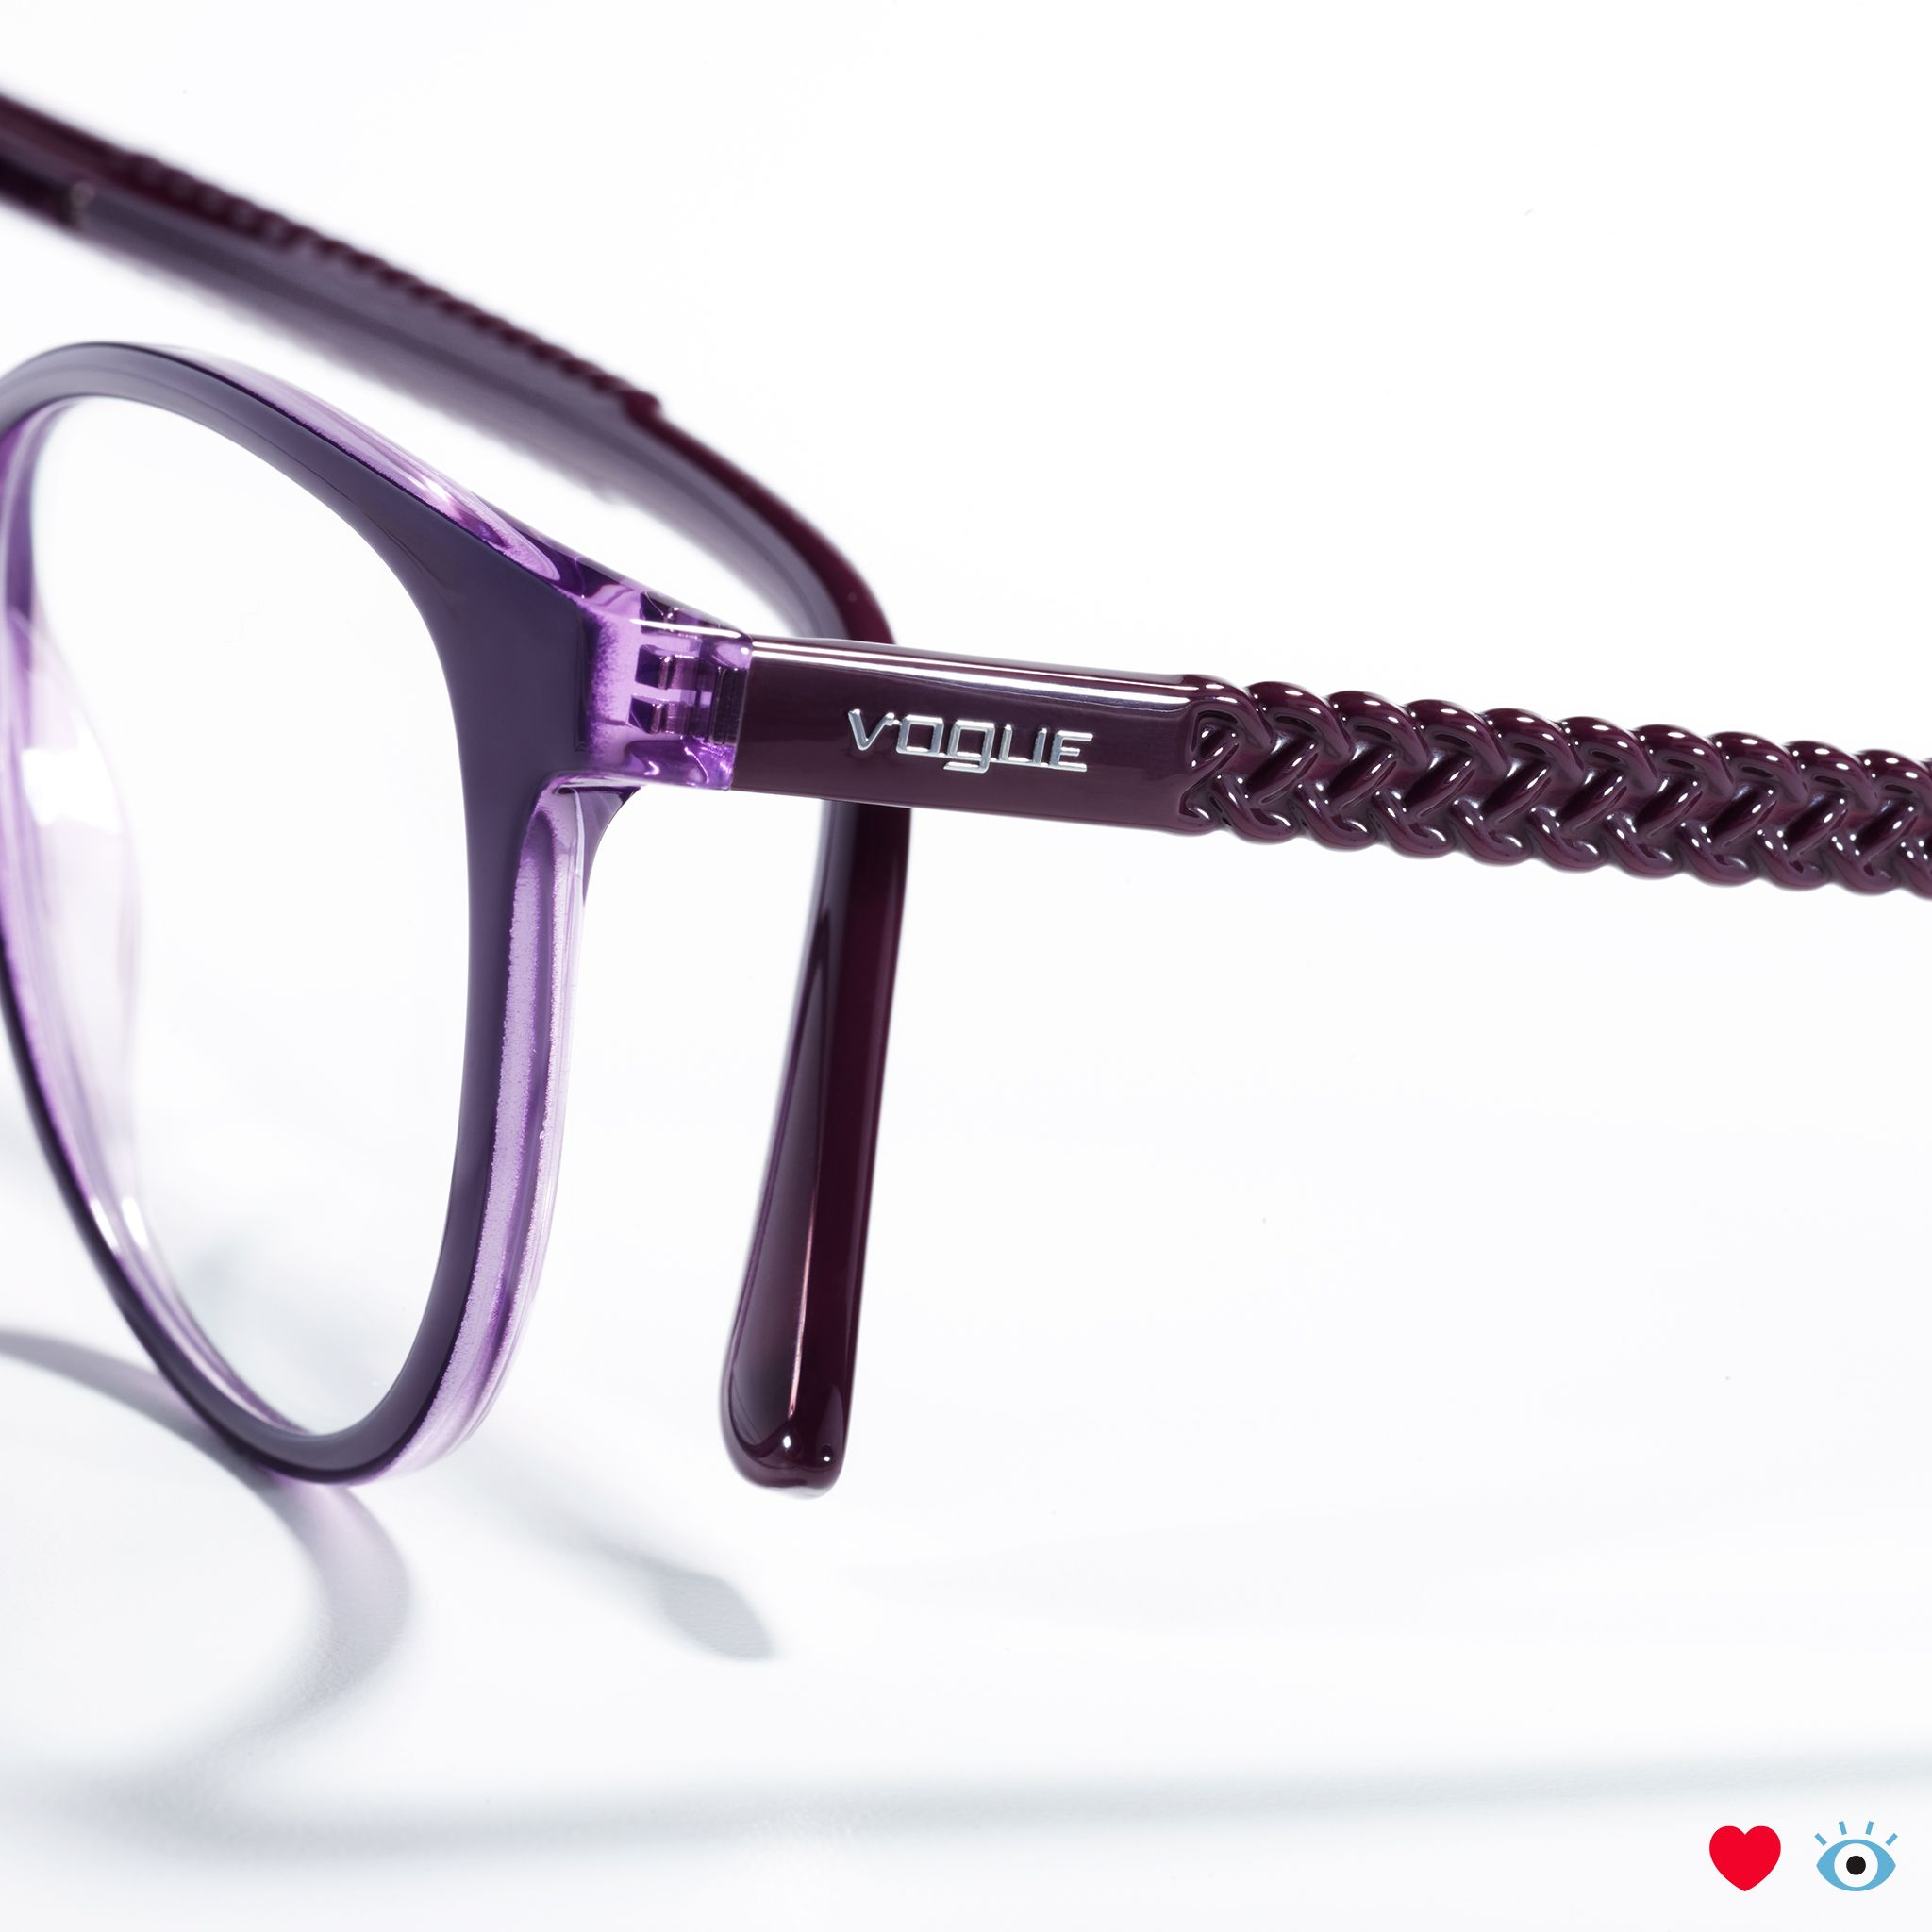 b8aca1b3c944 These Vogue frames have beautiful and unexpected details like a deep purple  color   textural braids on the sides.